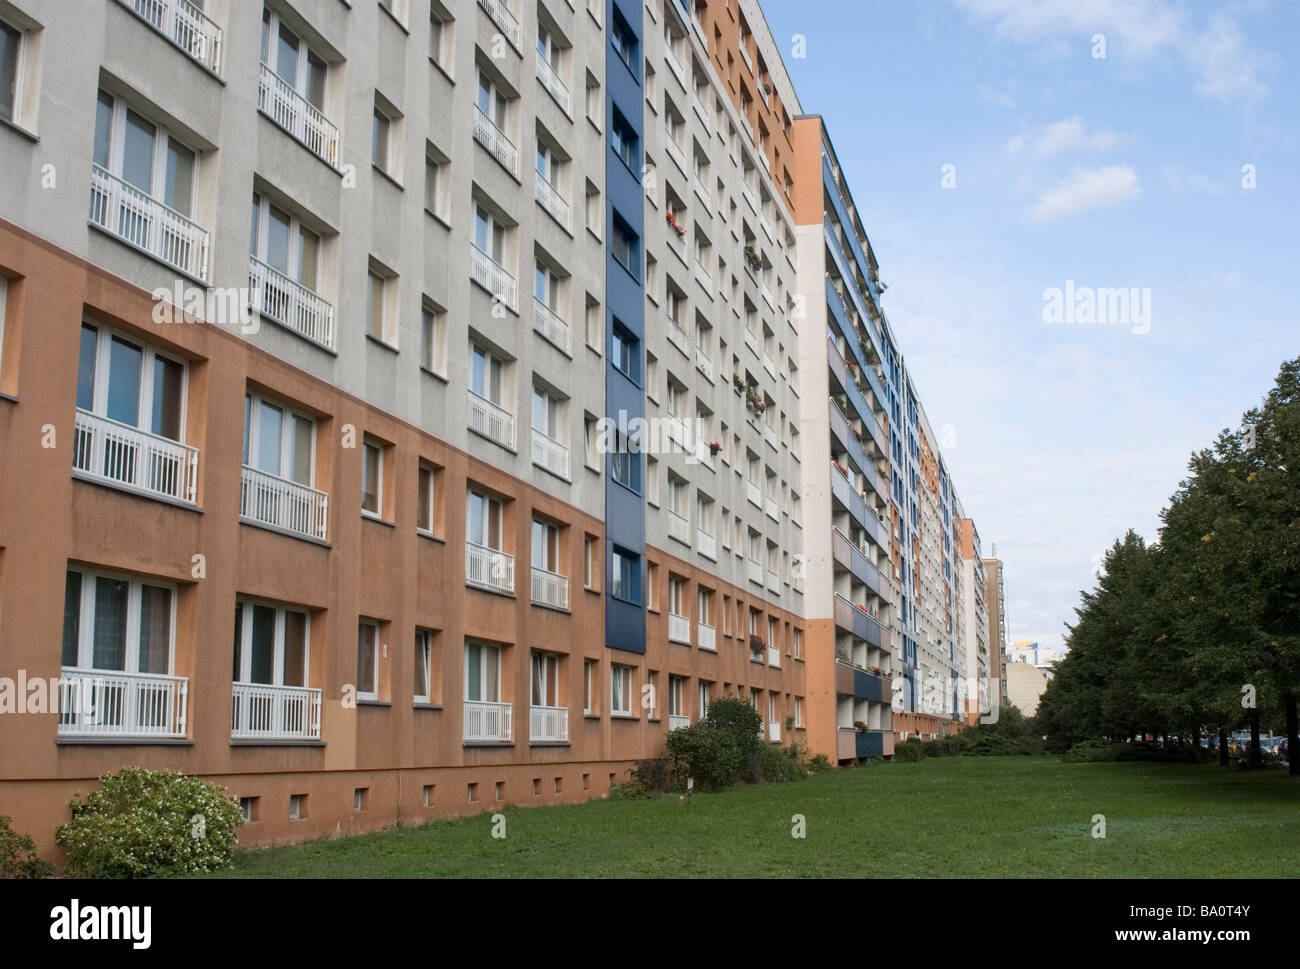 apartments building in Kreuzberg district Berlin Germany - Stock Image